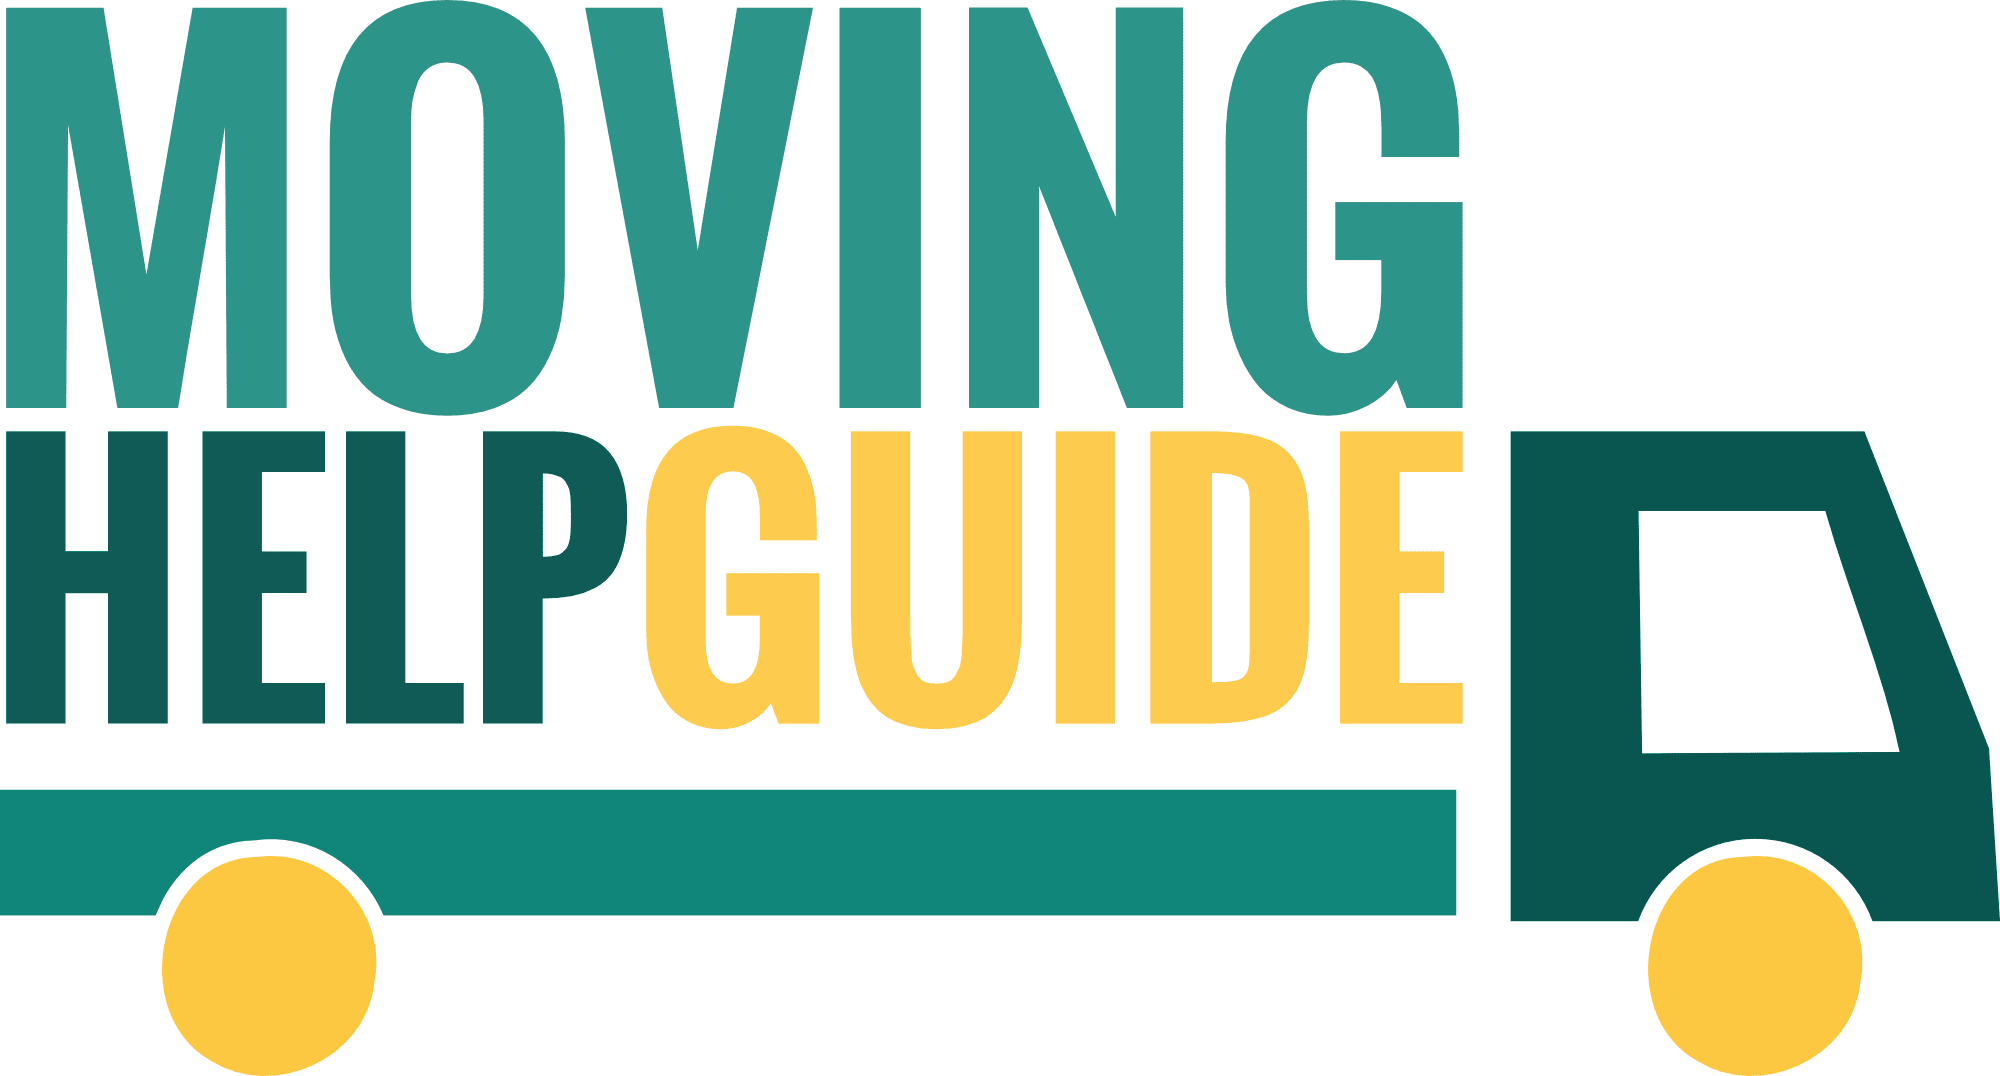 https://www.movinghelpguide.com/wp-content/uploads/2016/09/Moving-Help-Guide-1.png